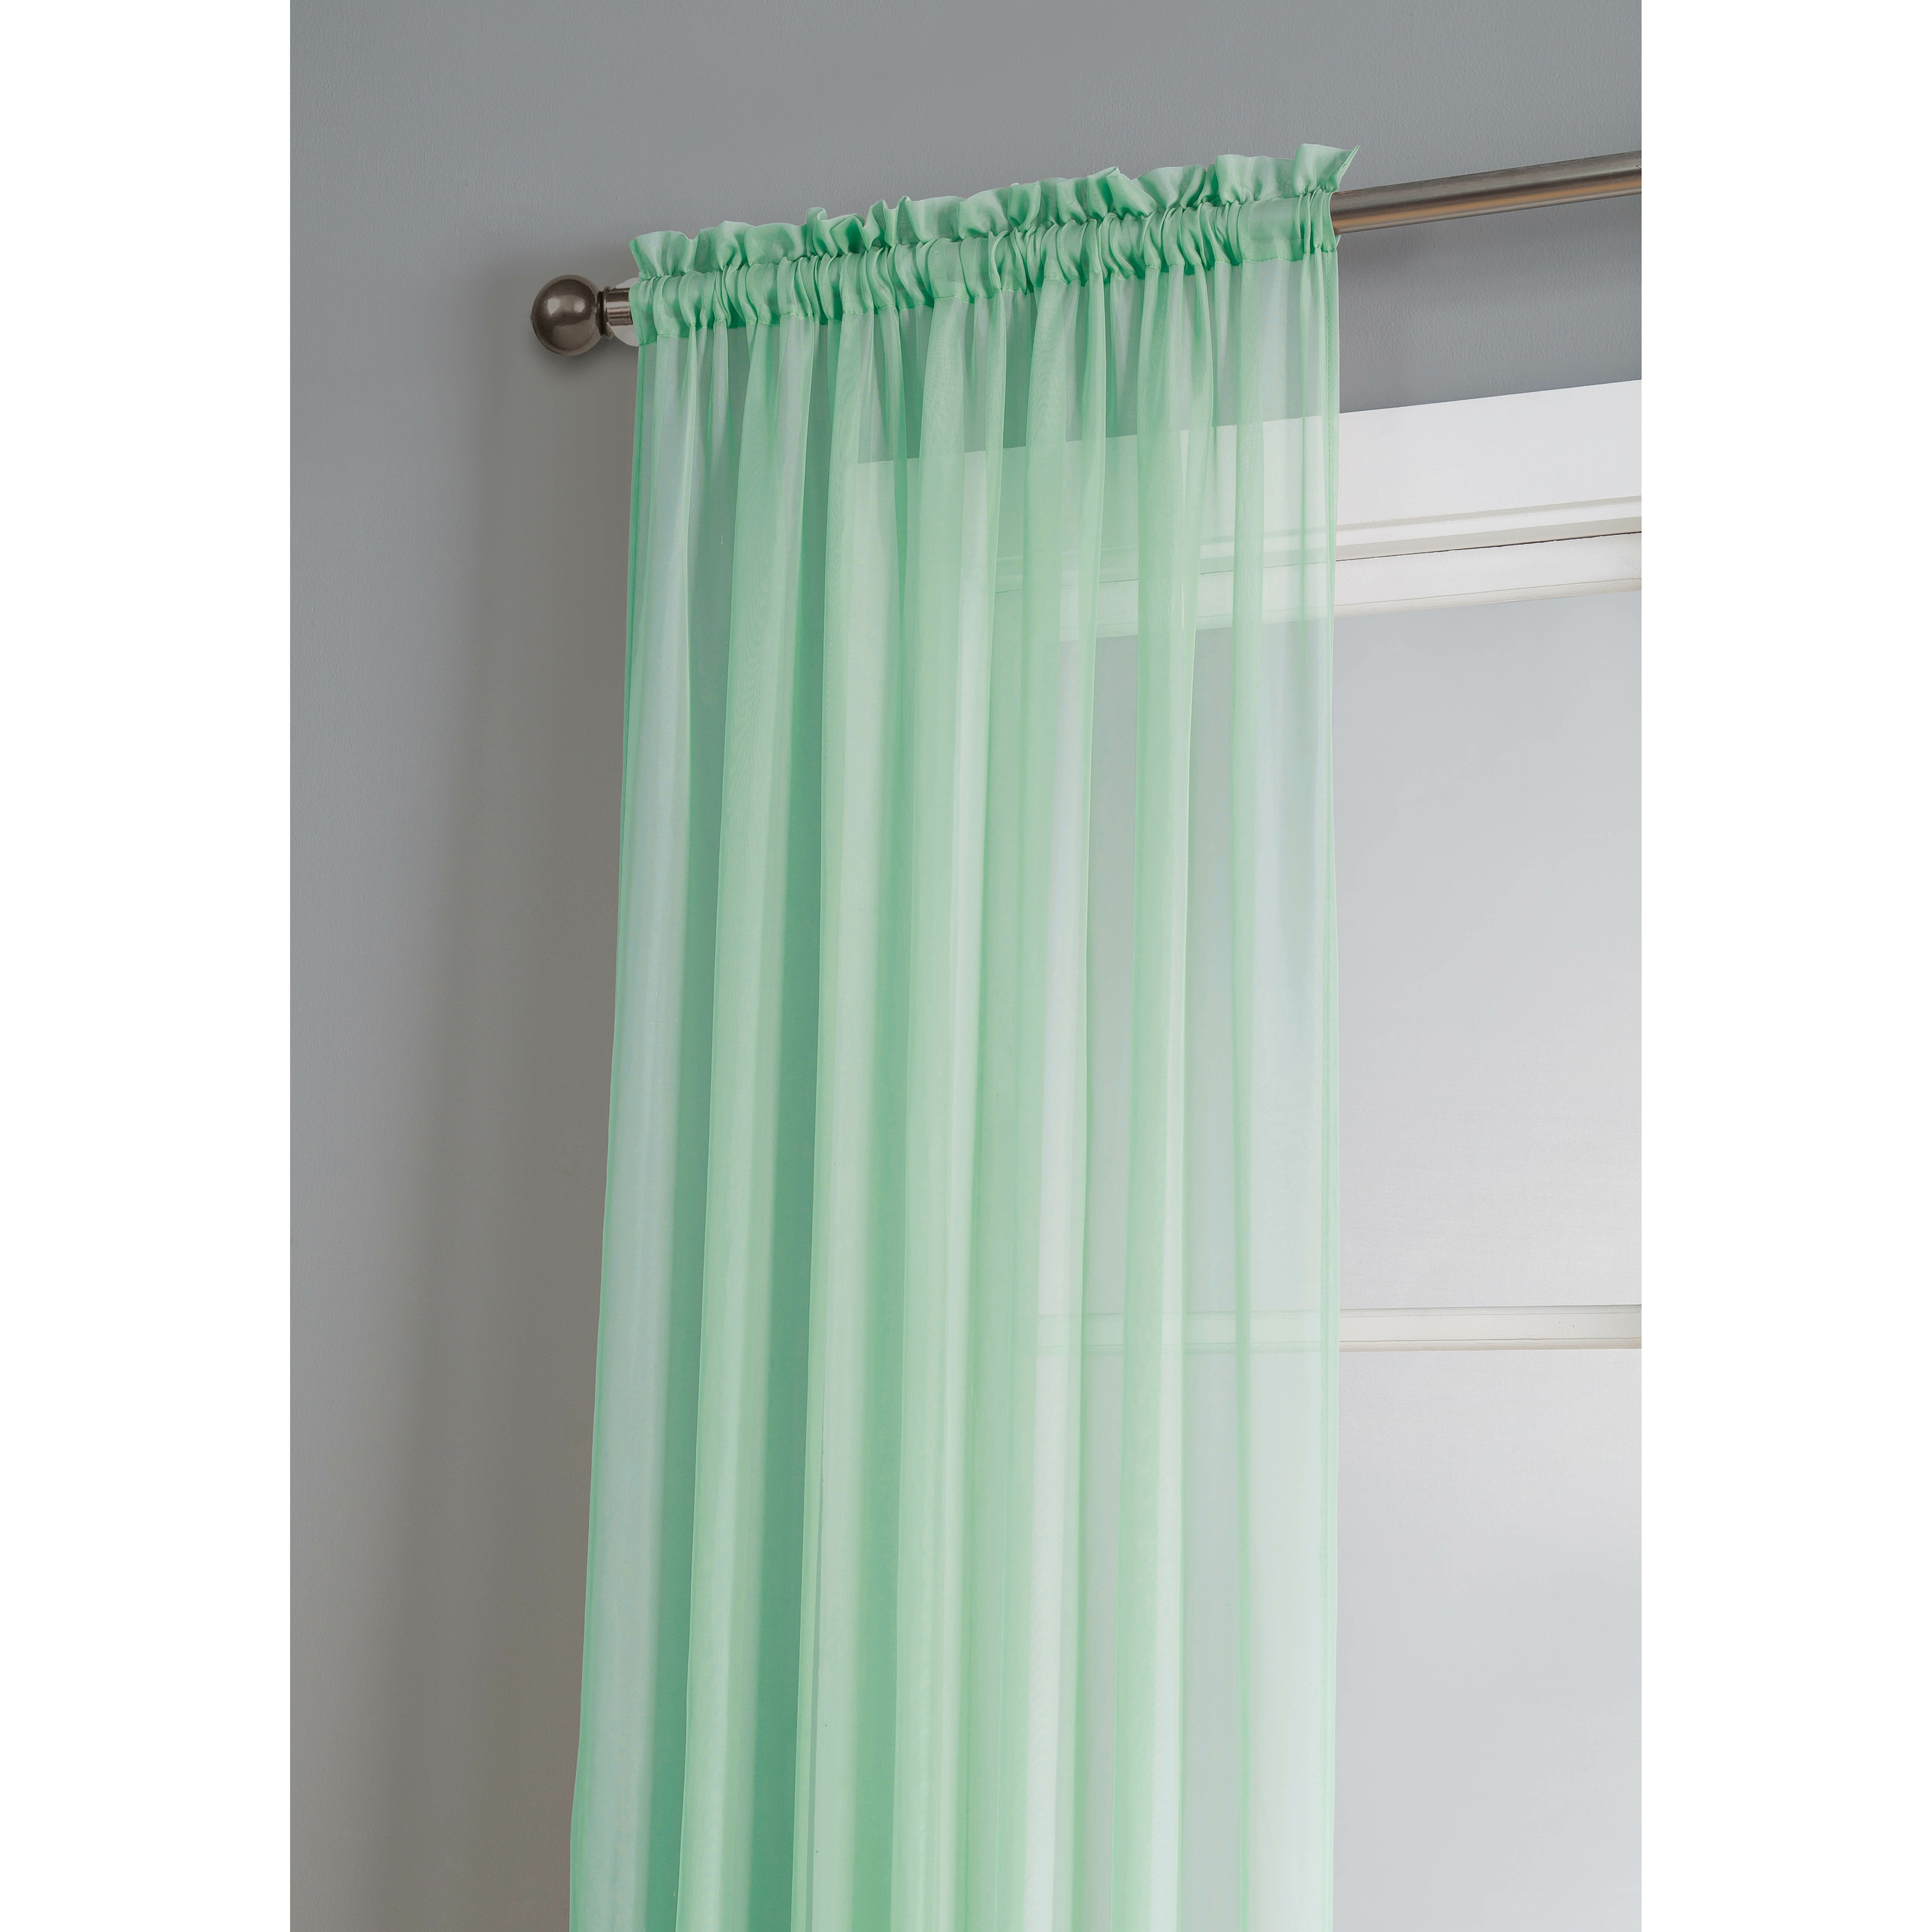 window elements diamond sheer voile extra wide rod pocket single curtain panel reviews wayfair. Black Bedroom Furniture Sets. Home Design Ideas